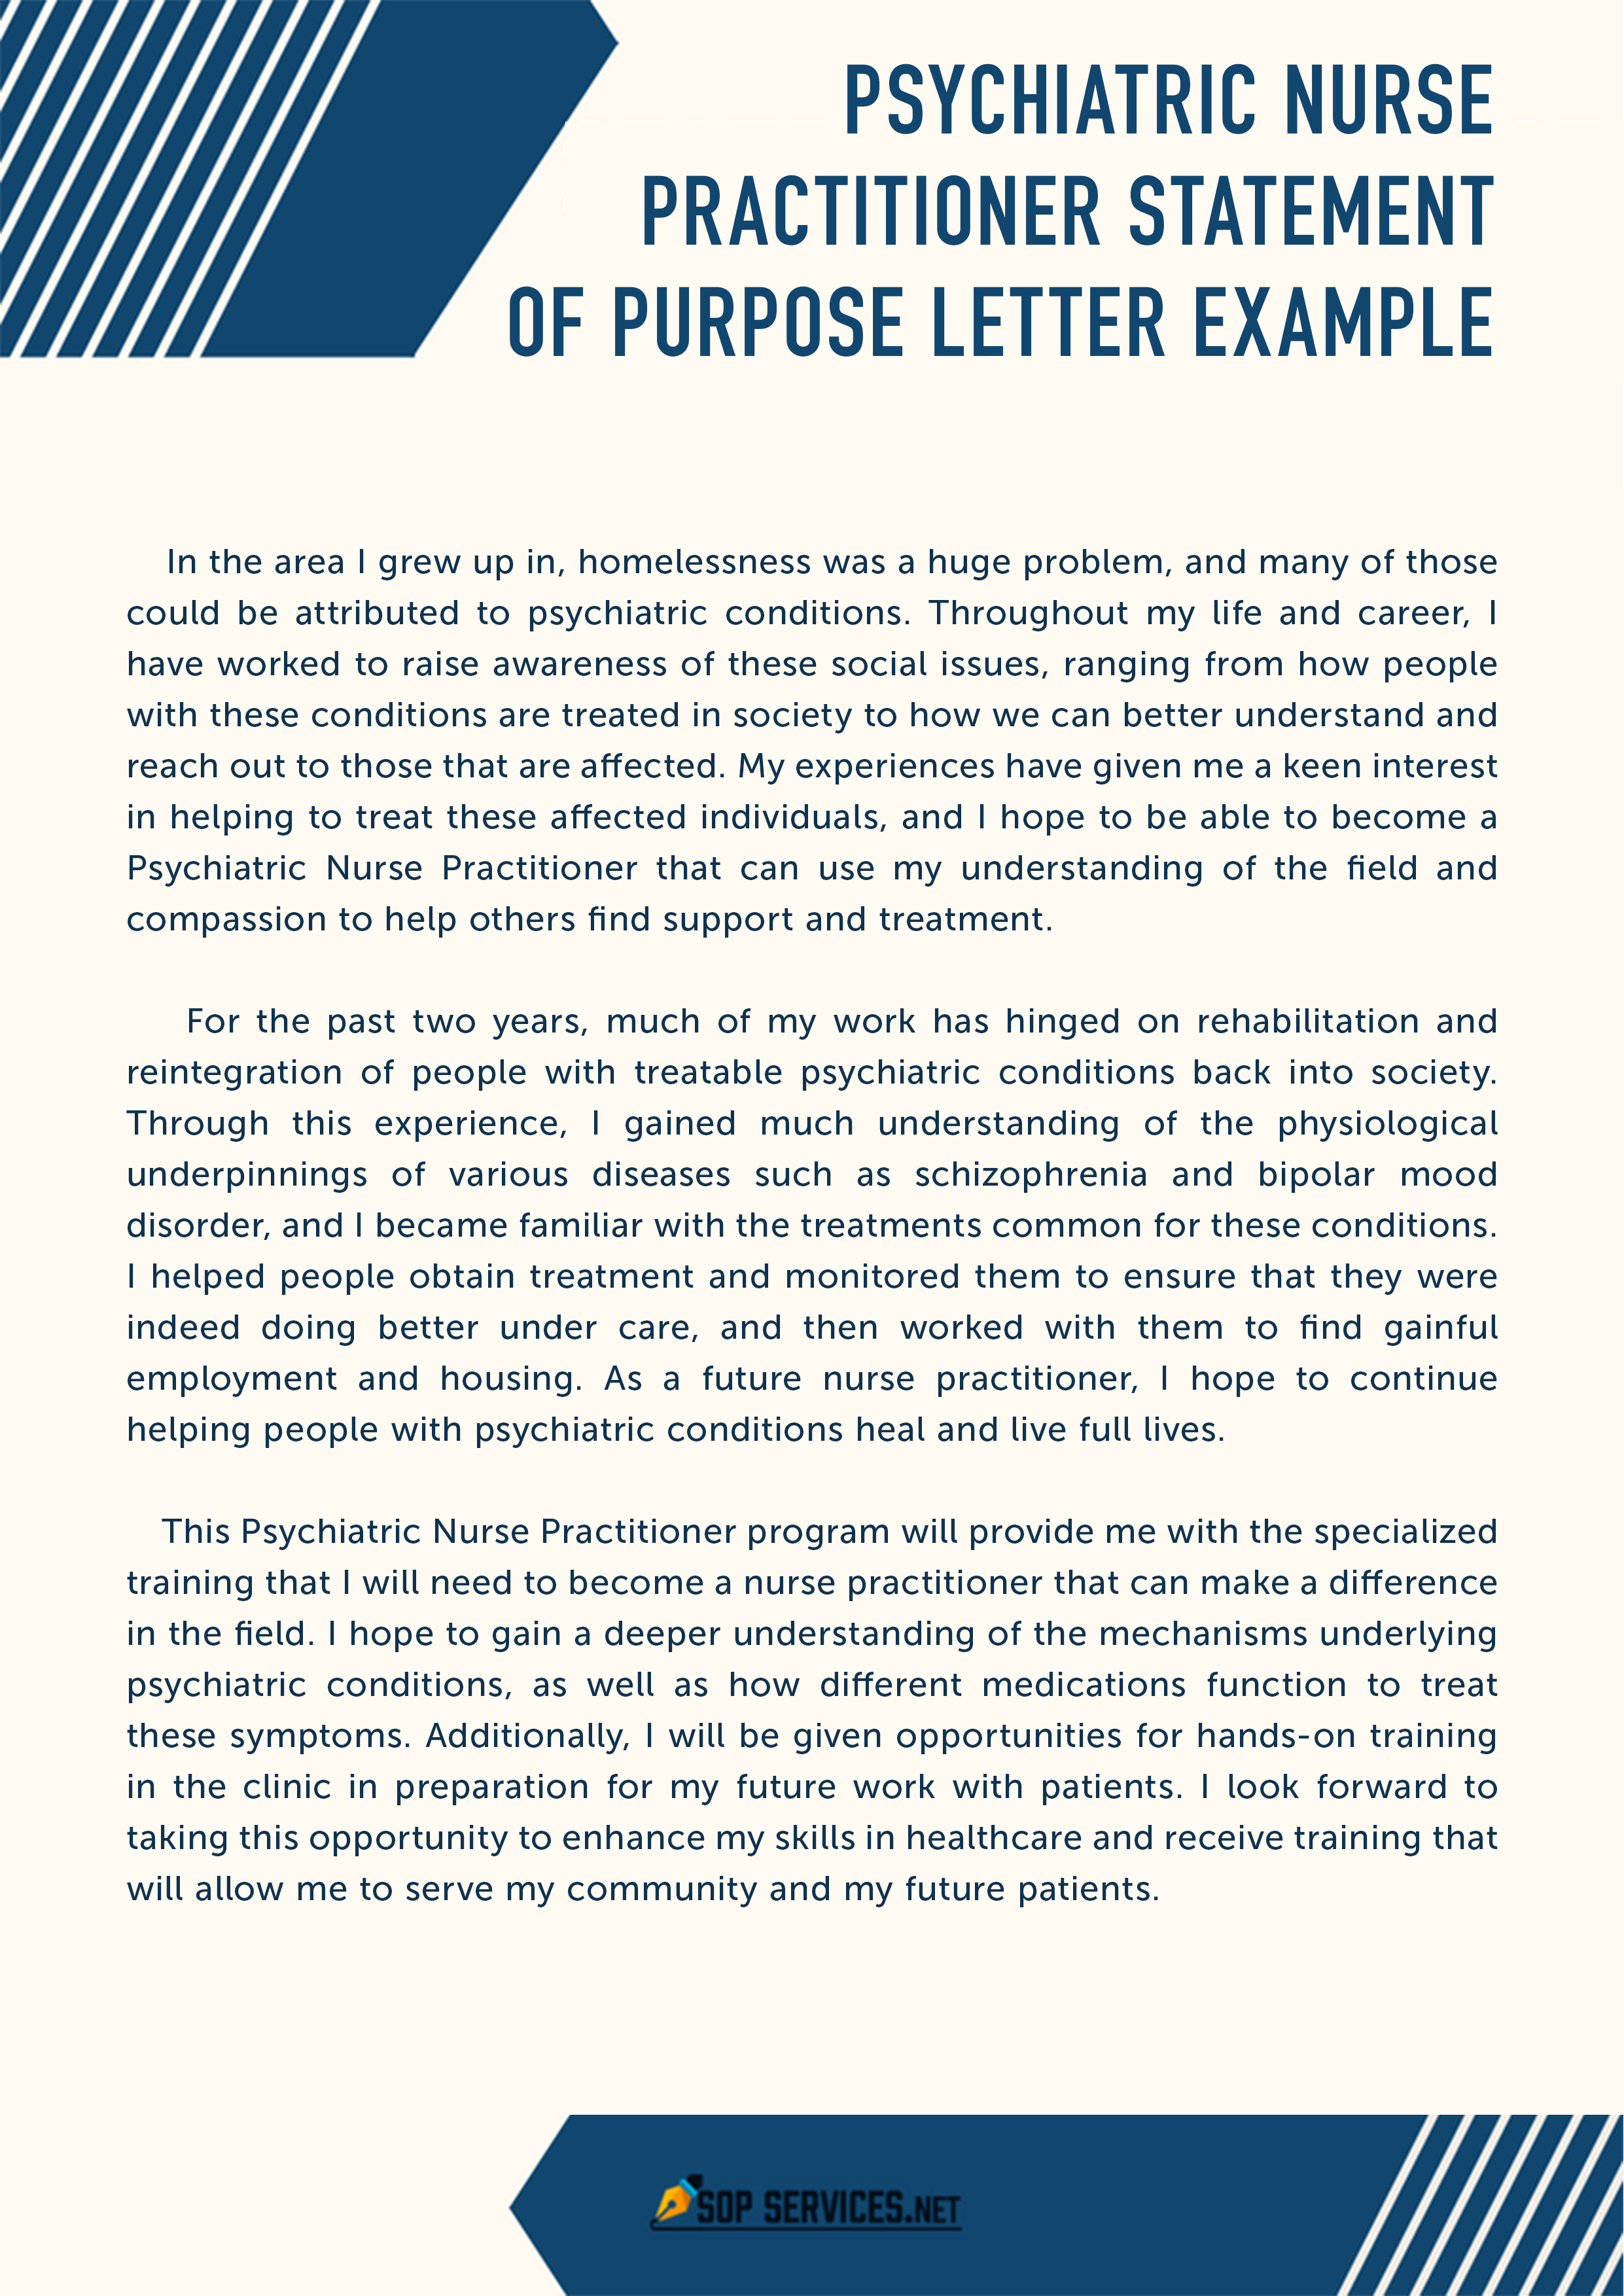 Statement Of Interest Sample Letter from www.sopservices.net